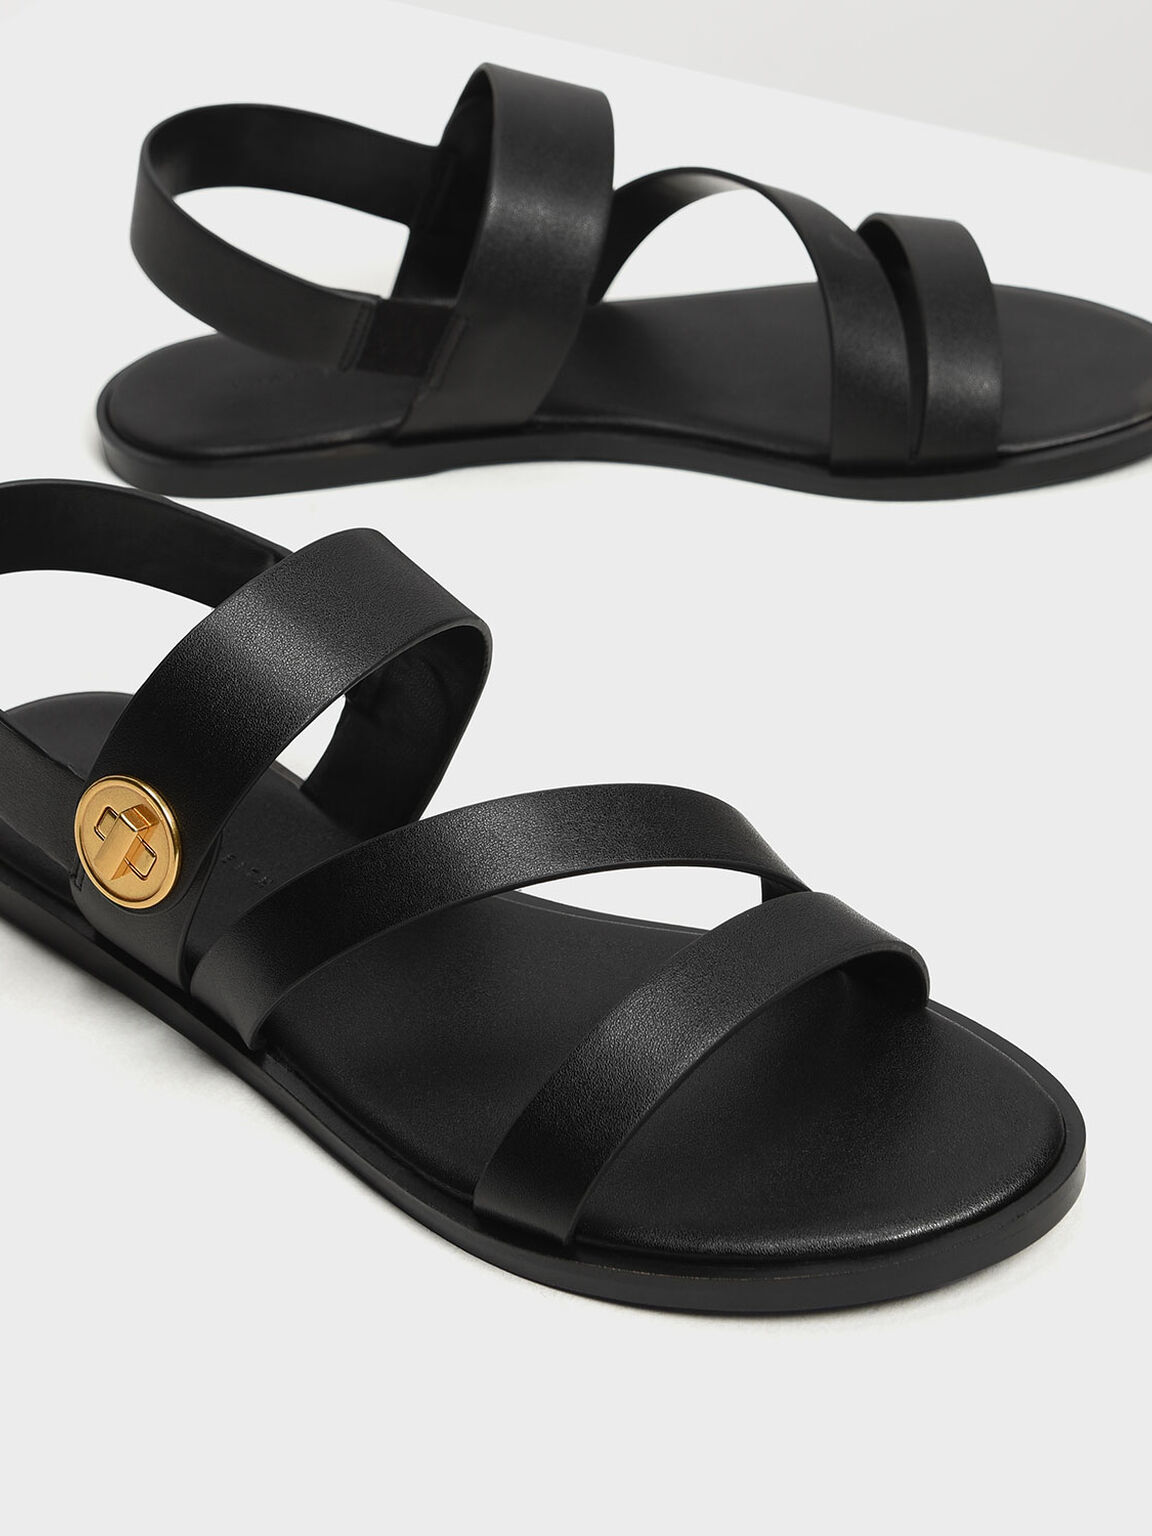 Asymmetrical Strappy Sandals, Black, hi-res